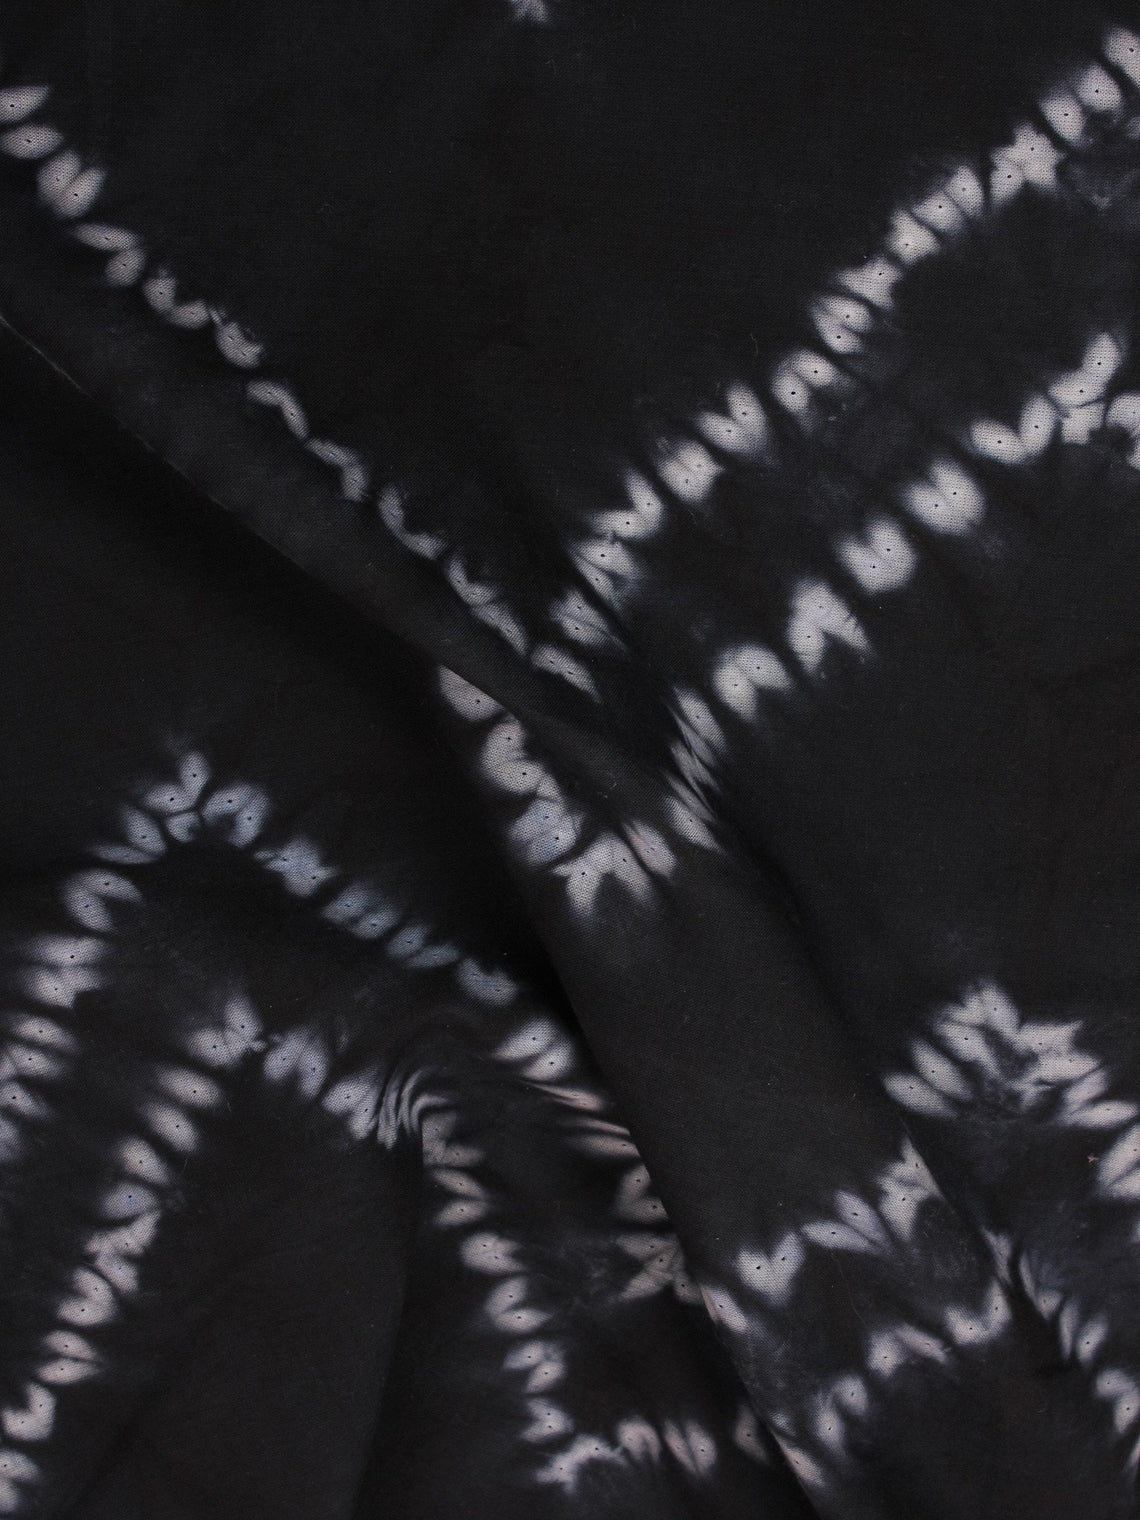 Black White Hand Shibori Dyed Cotton Fabric Per Meter - F0916285